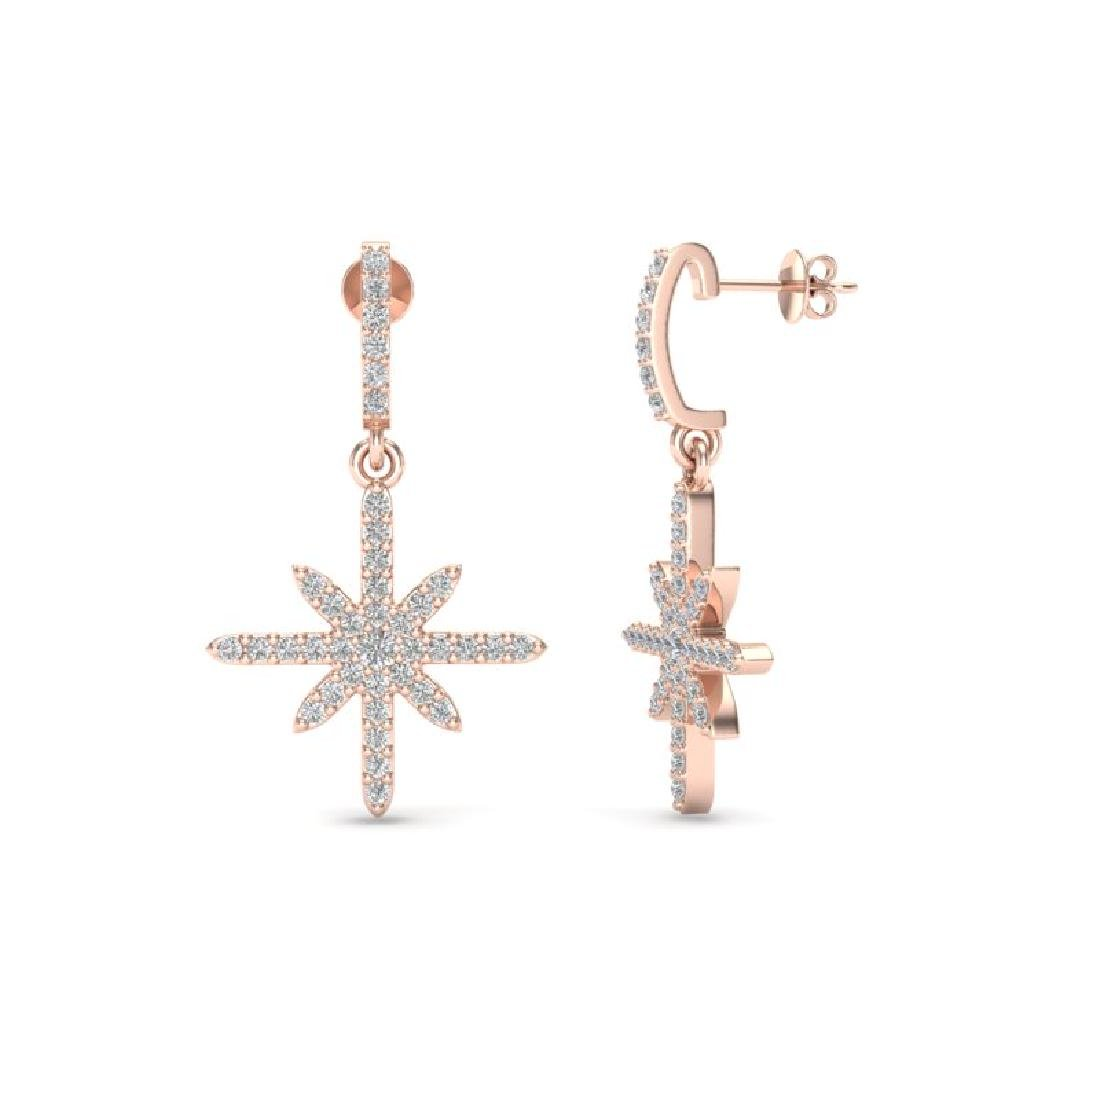 0.75 CTW Micro Pave VS/SI Diamond Earrings 14K Rose - 2